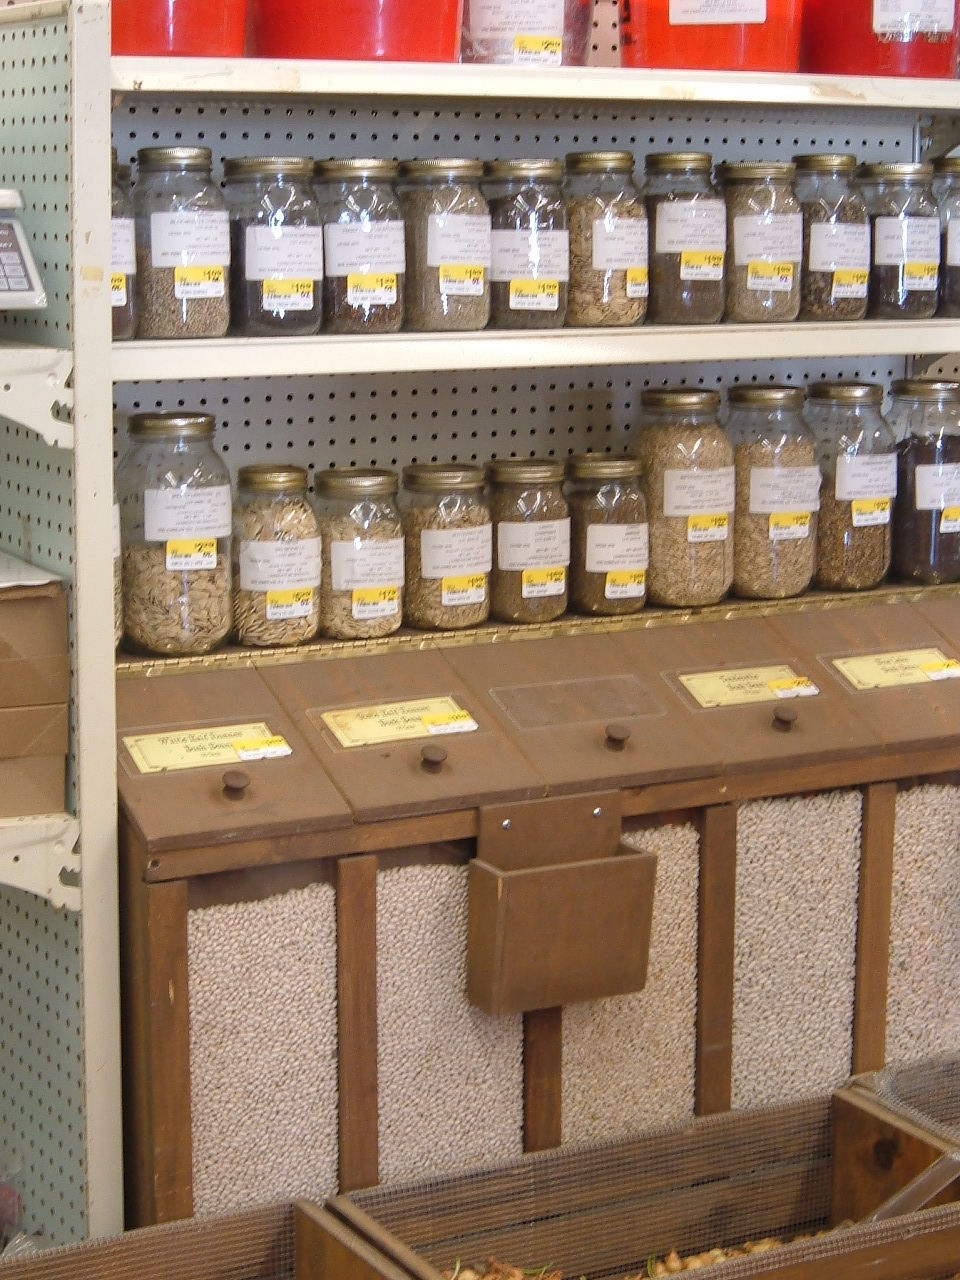 20190901-gm-seeds-4-5-06 Summersville Seed Display 004-3.jpg